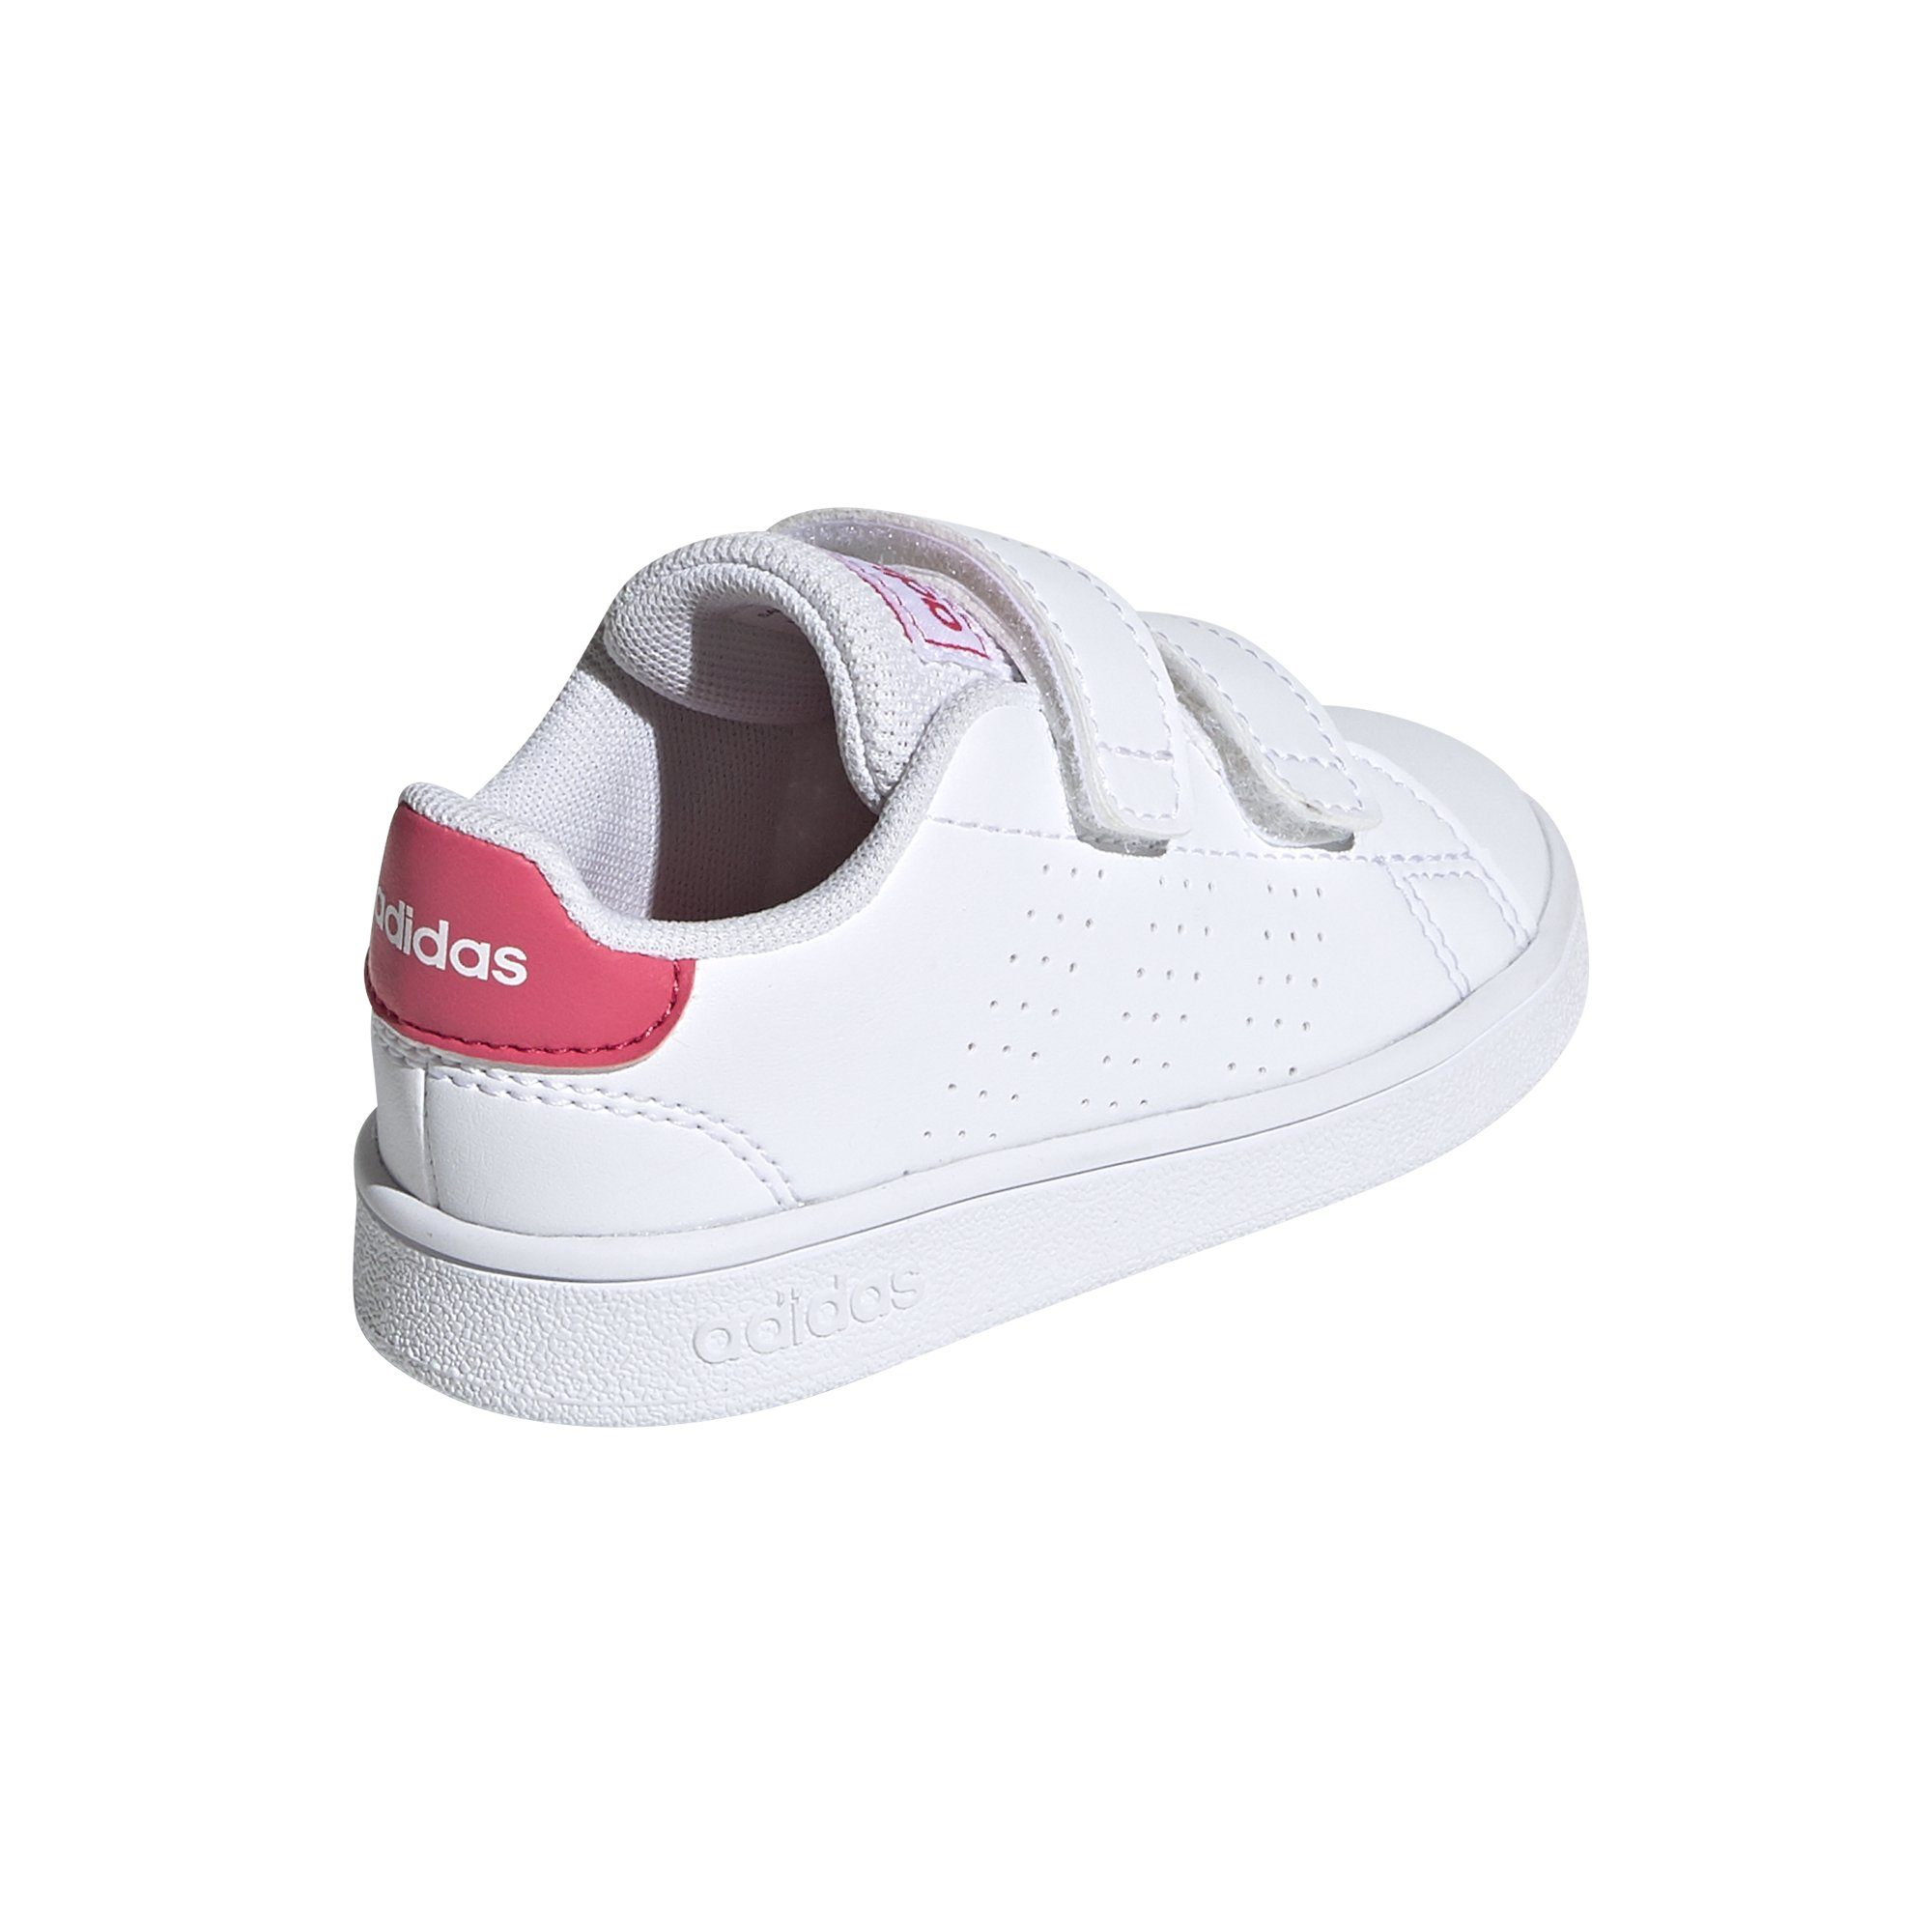 Adidas Infant Advantage Shoes - White/Real Pink SP-Footwear-Kids Adidas